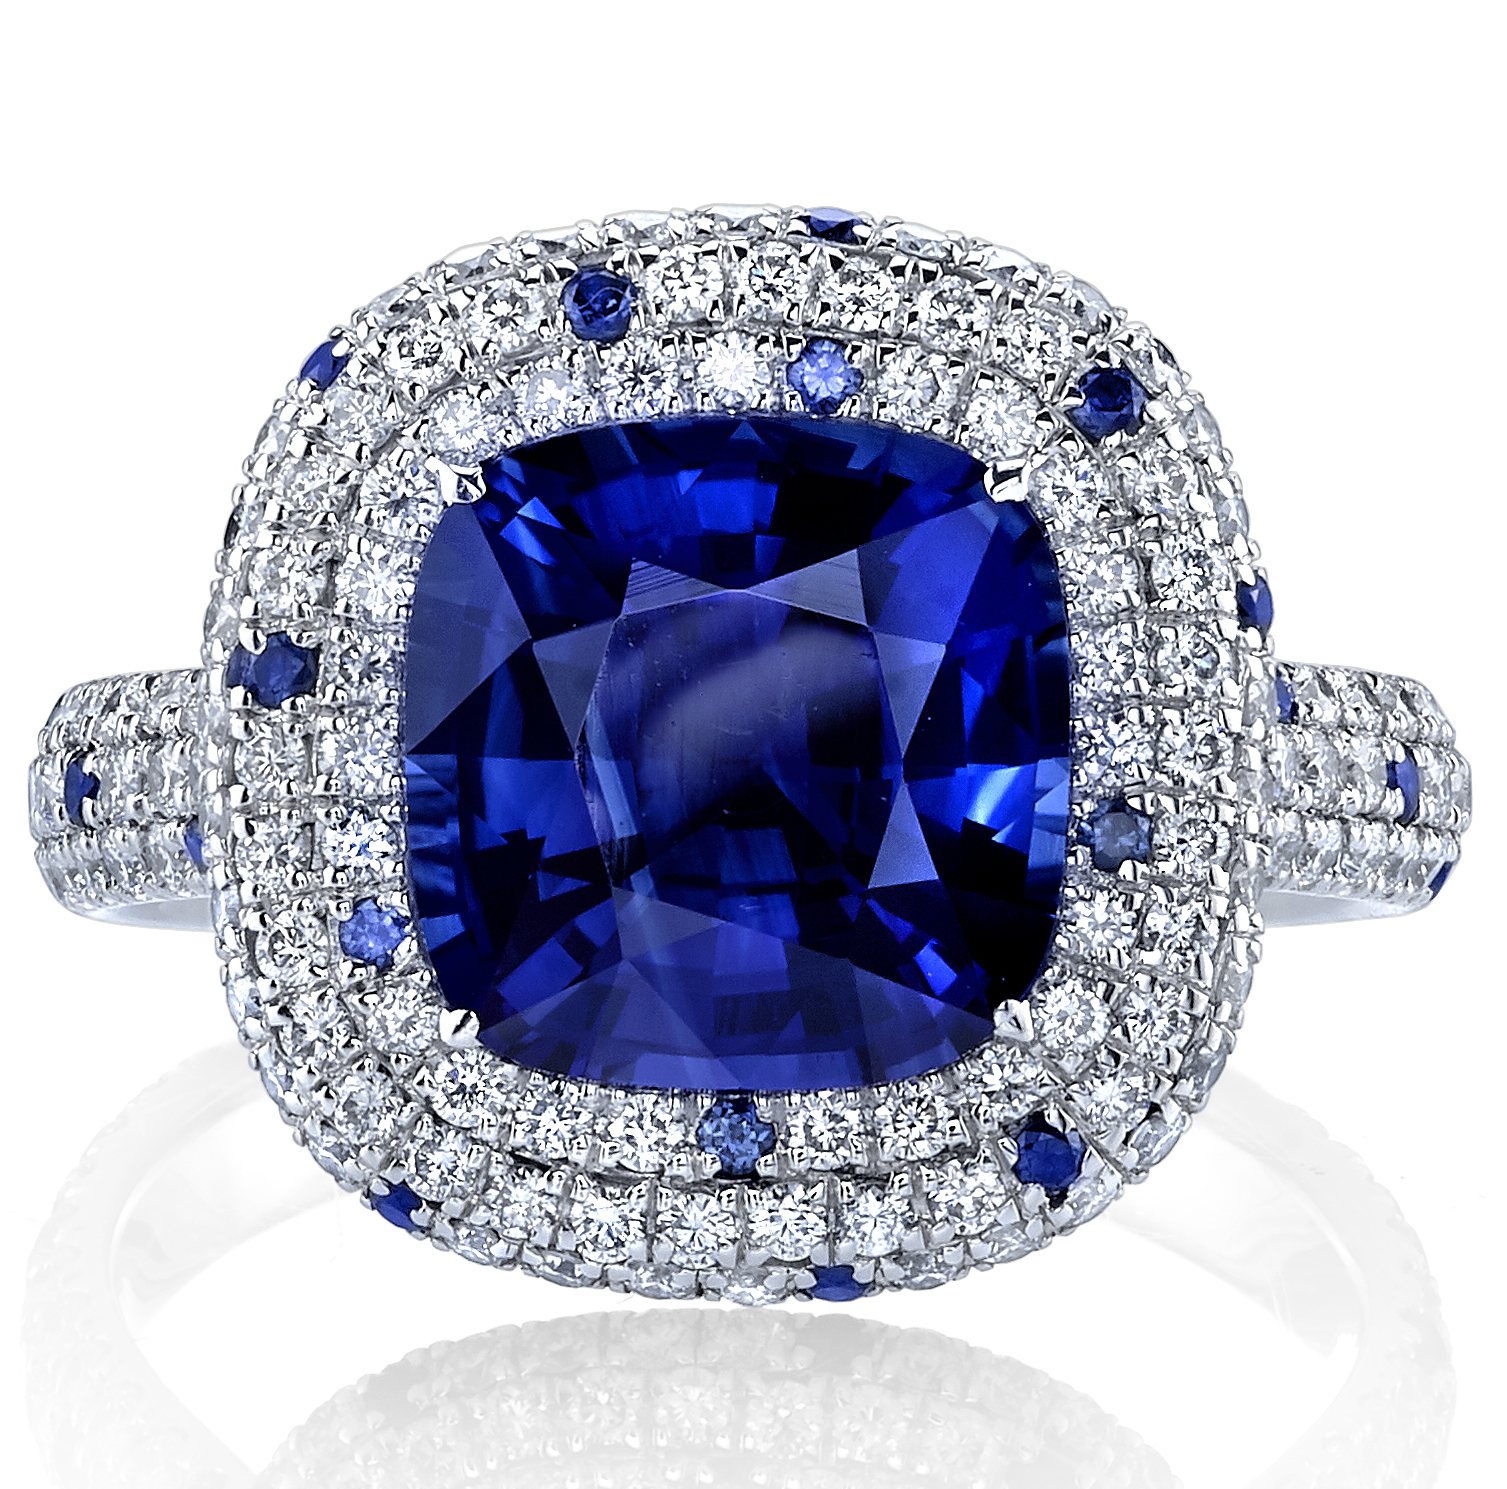 Joshua J cushion sapphire ring | JCK On Your Market